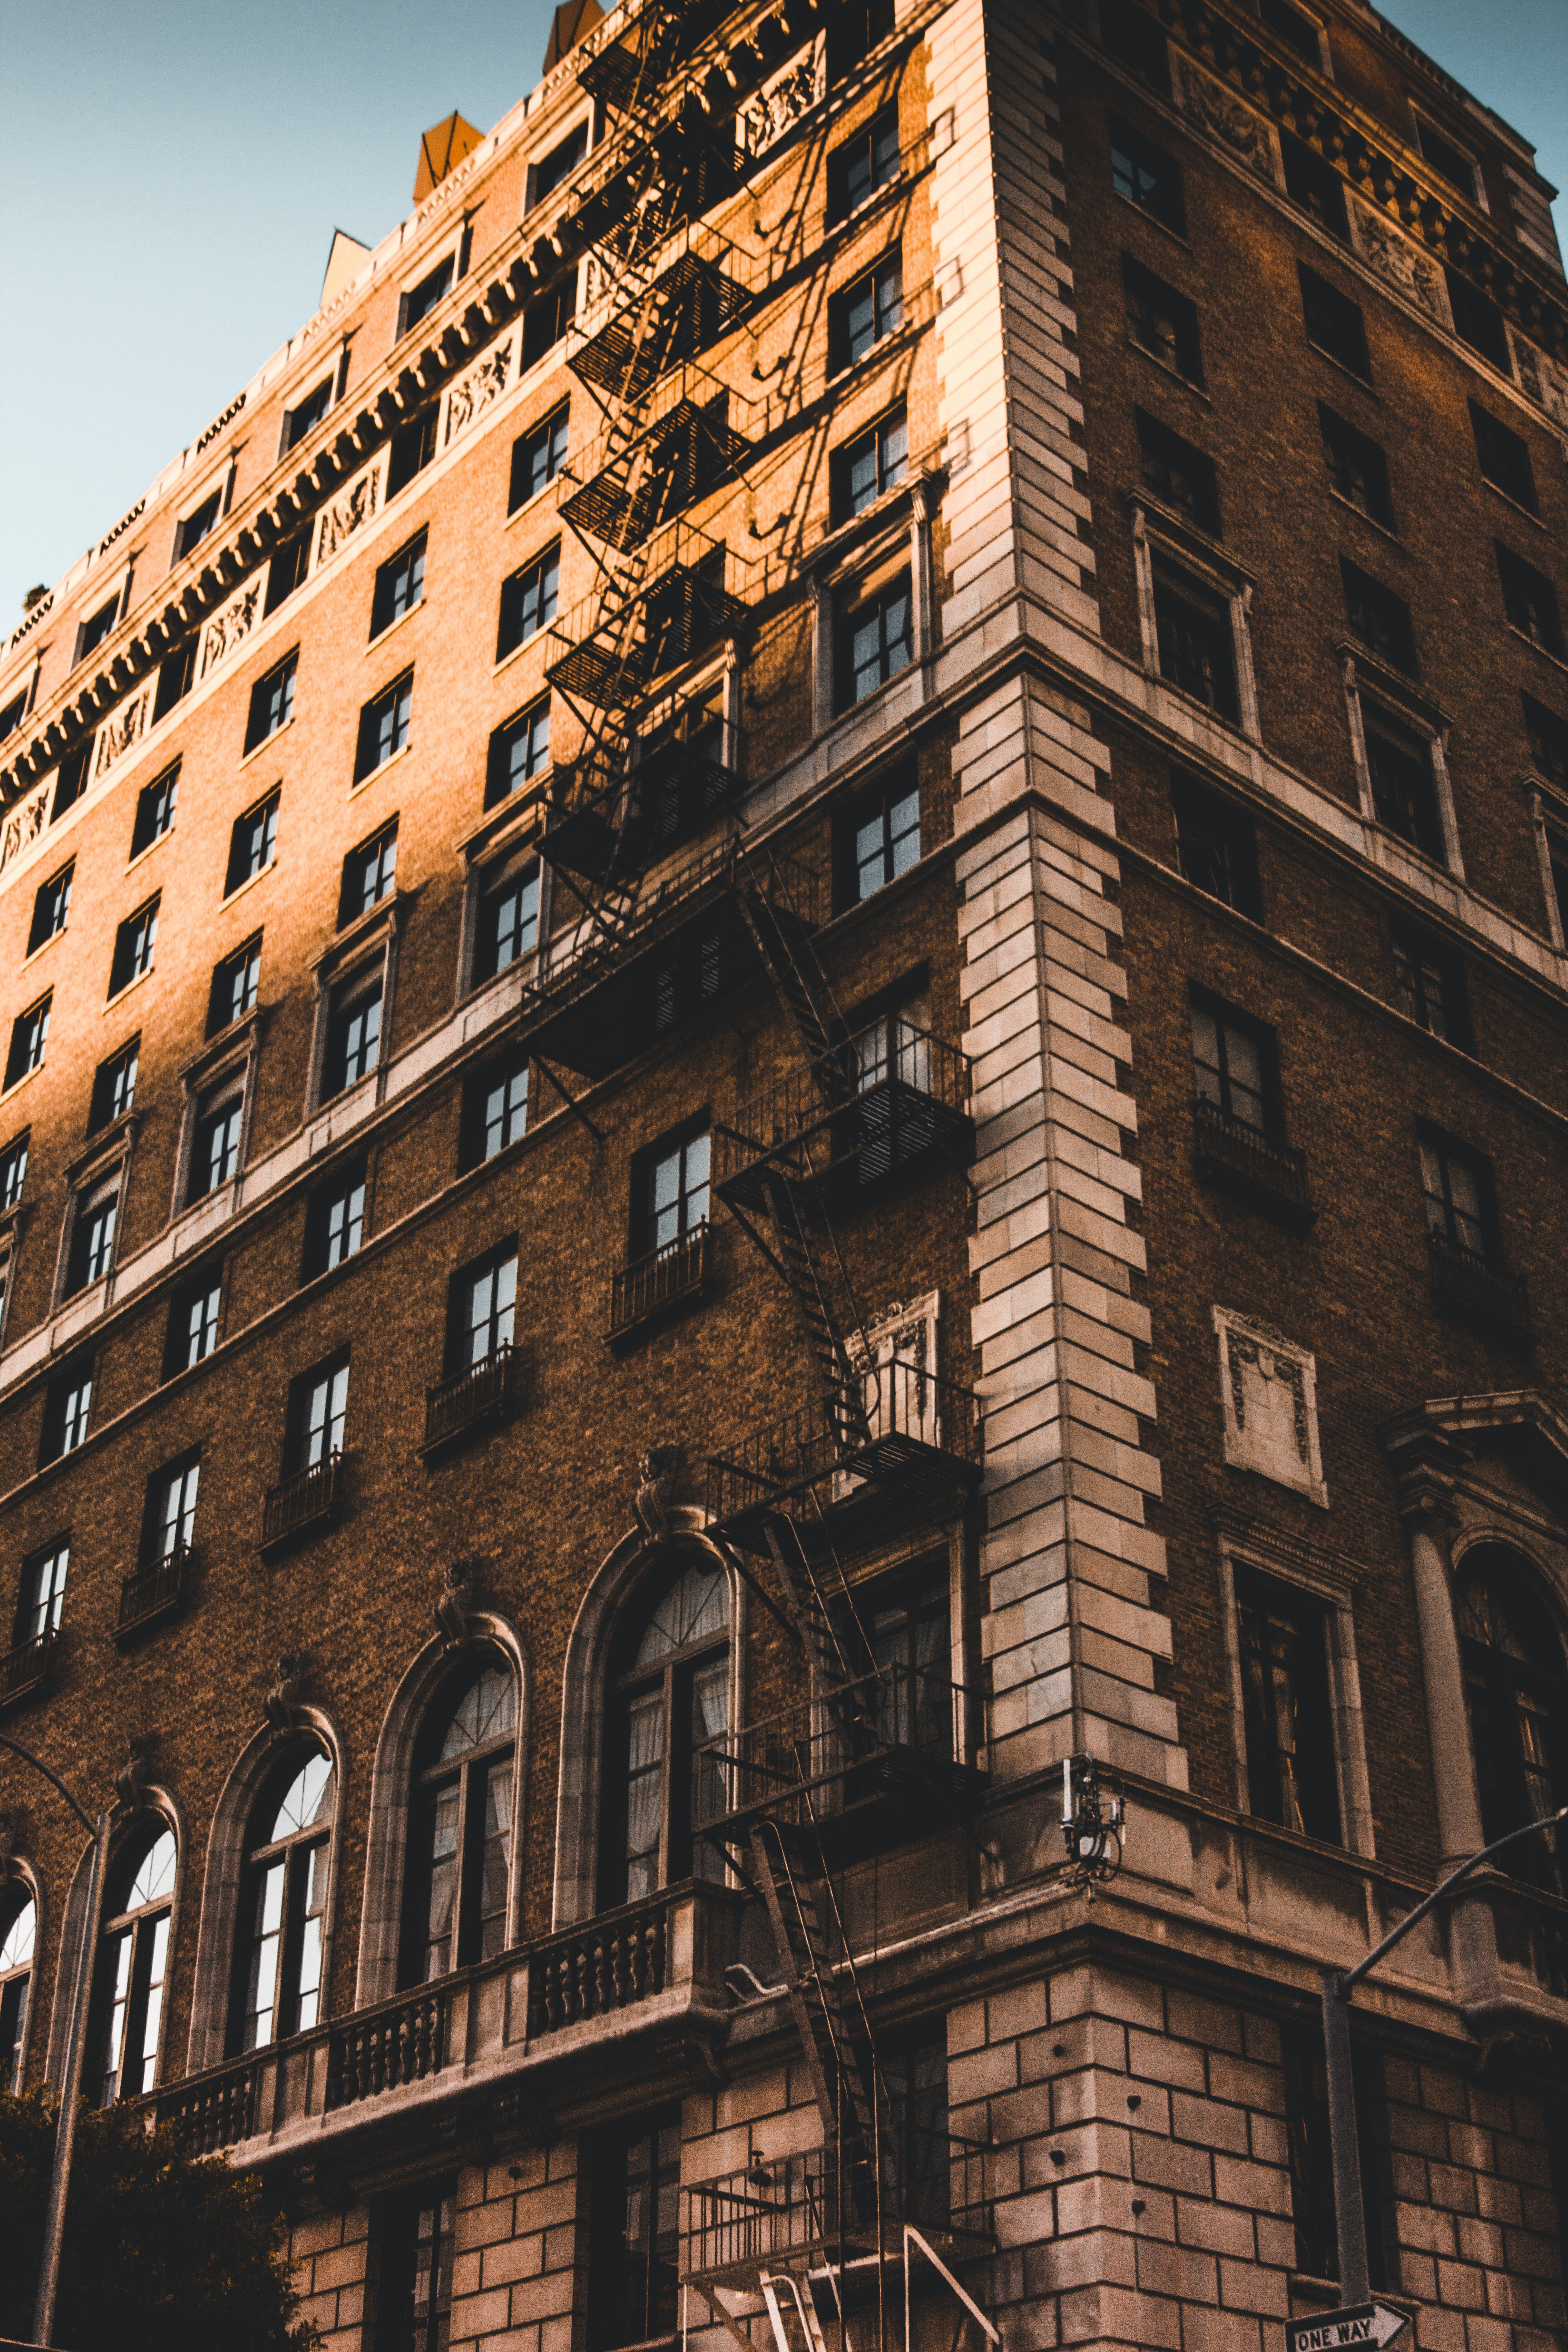 low angle photo of brown building